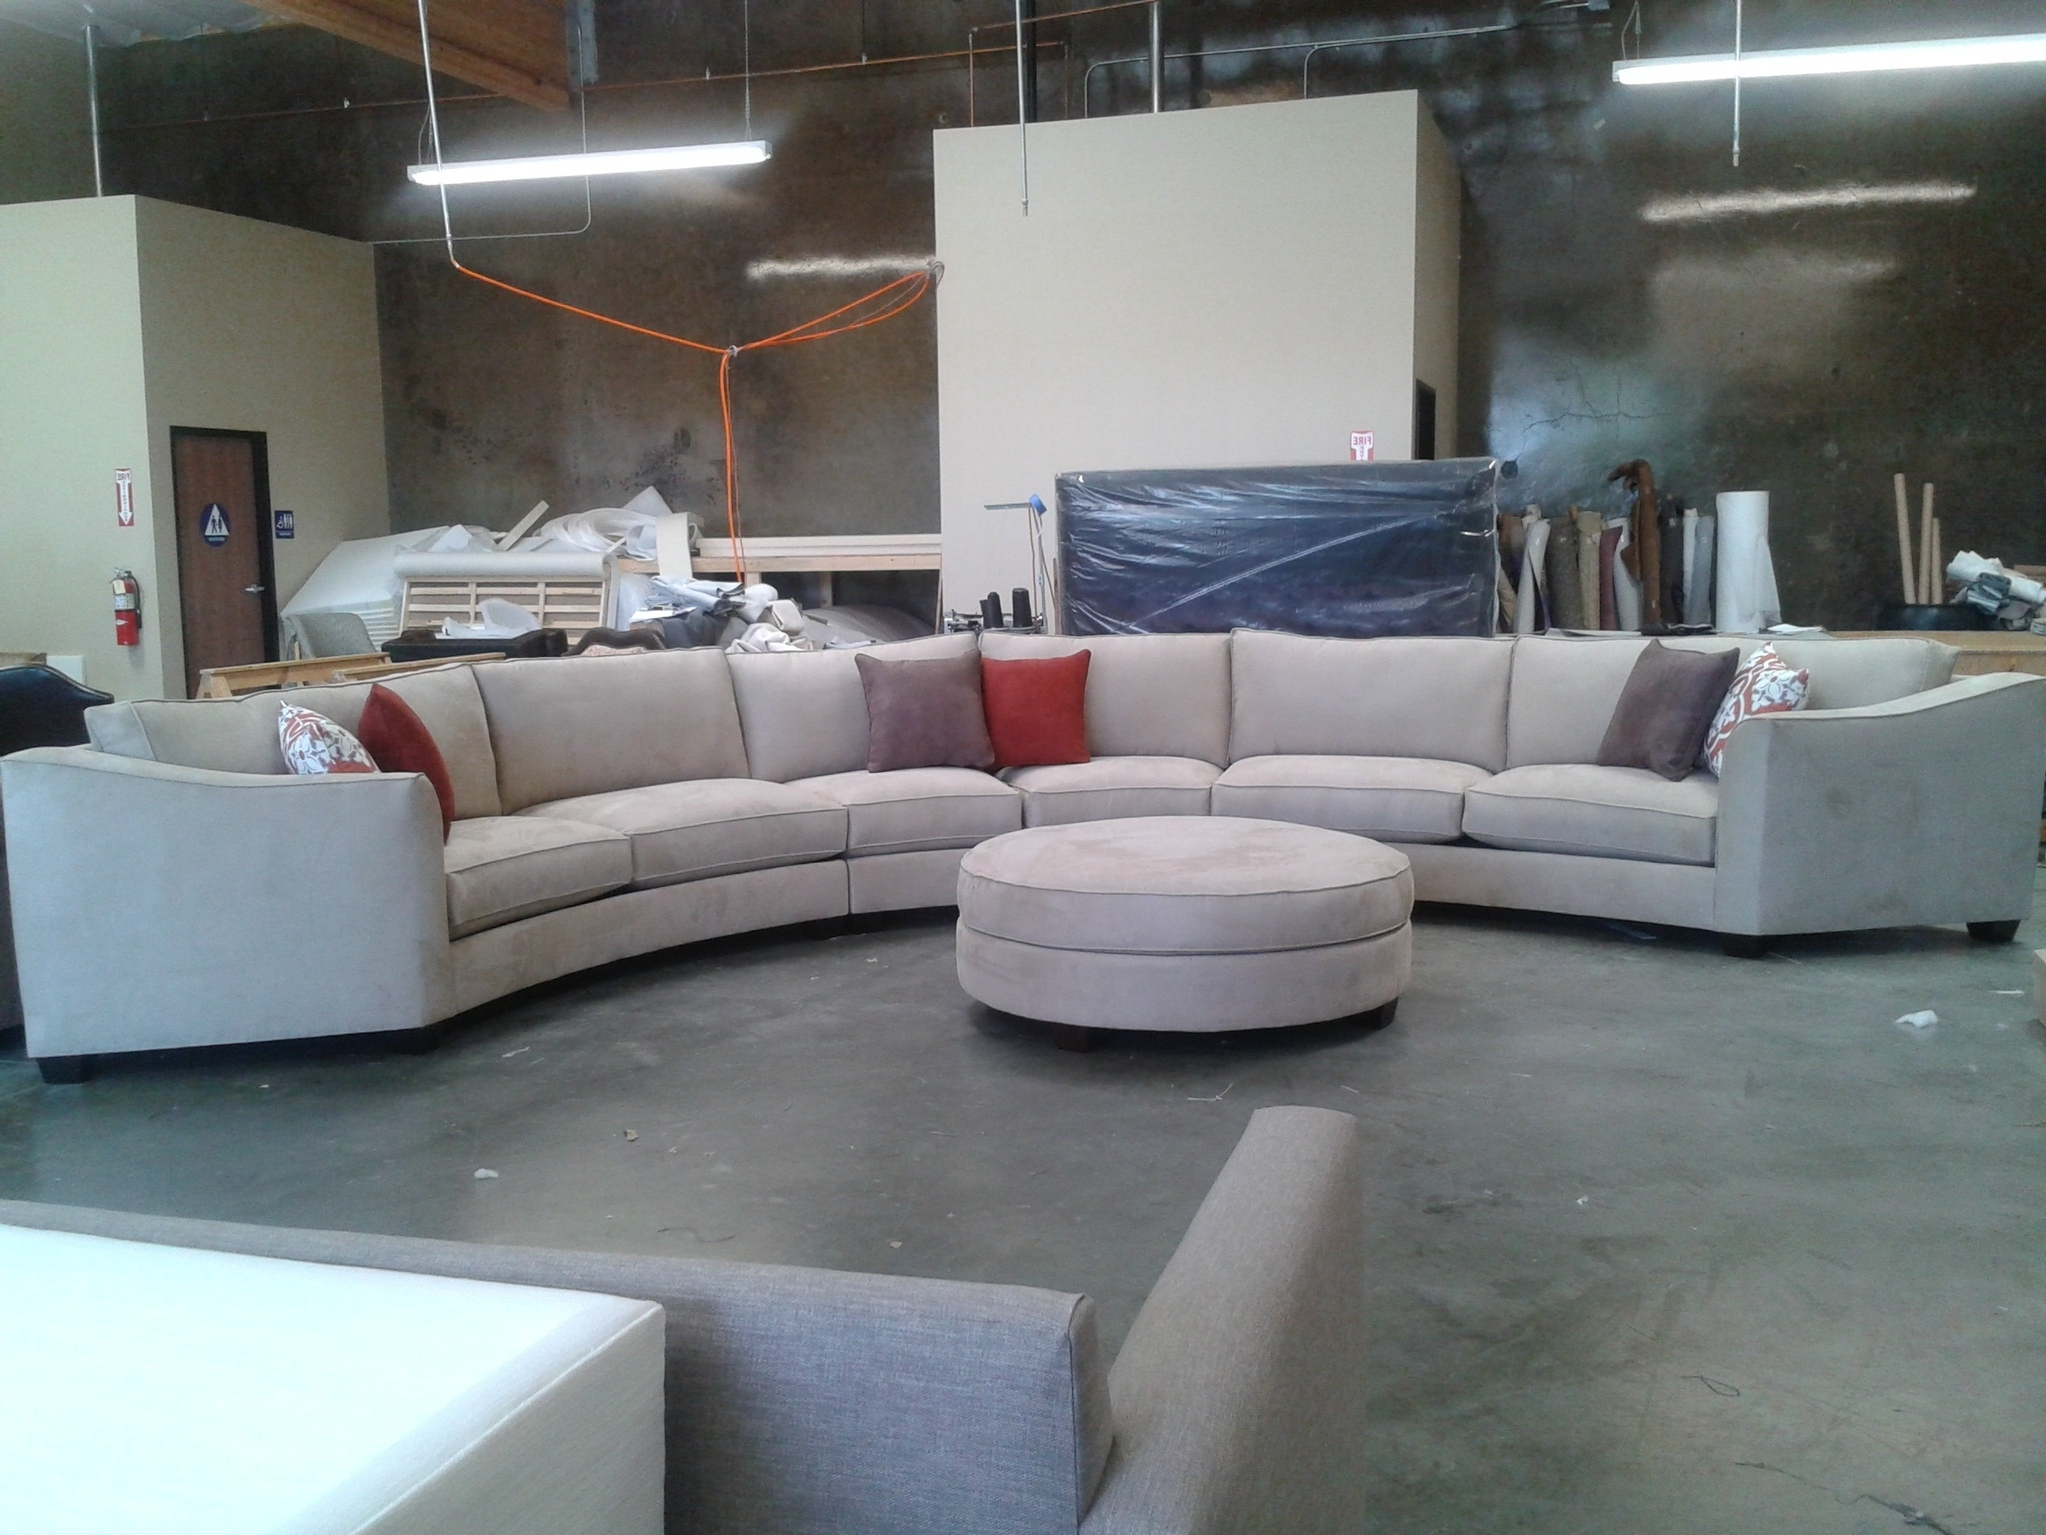 110X90 Sectional Sofas Regarding Preferred Furniture : Youth Recliner Large Sectional Sofas With Ottoman (View 5 of 15)